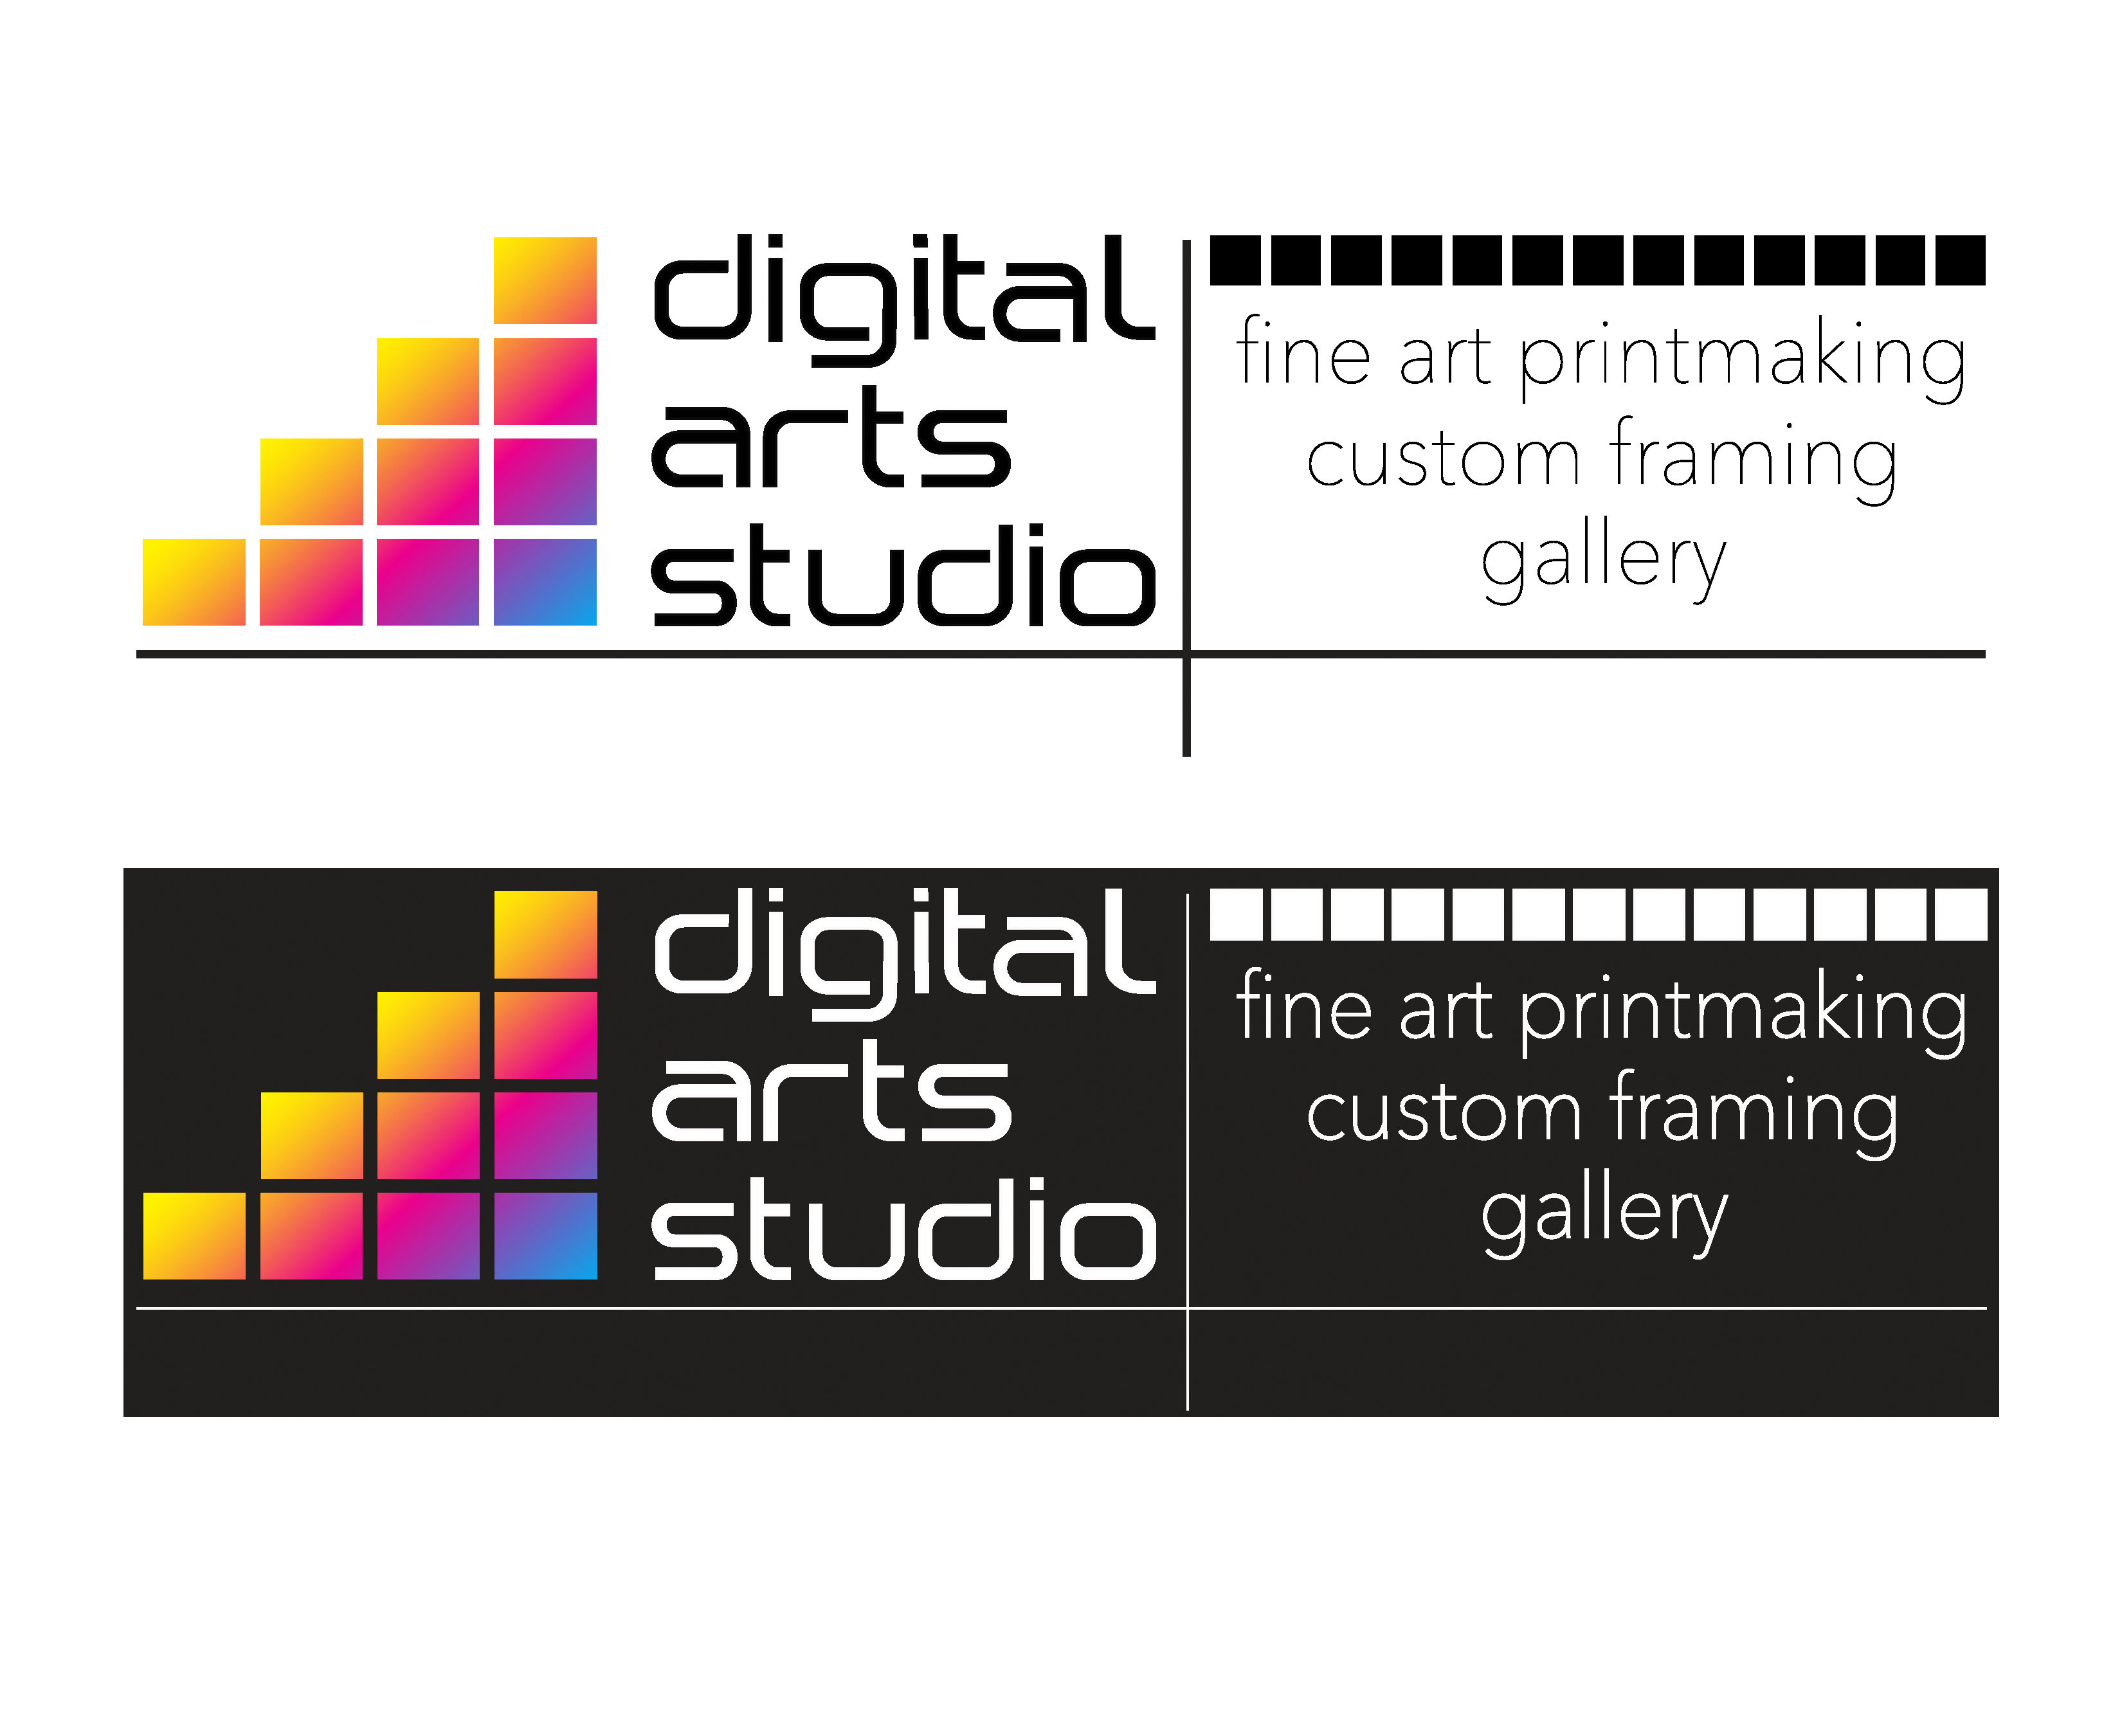 Giclee Printmaking And Custom Framing In Atlanta Digital Arts Studio